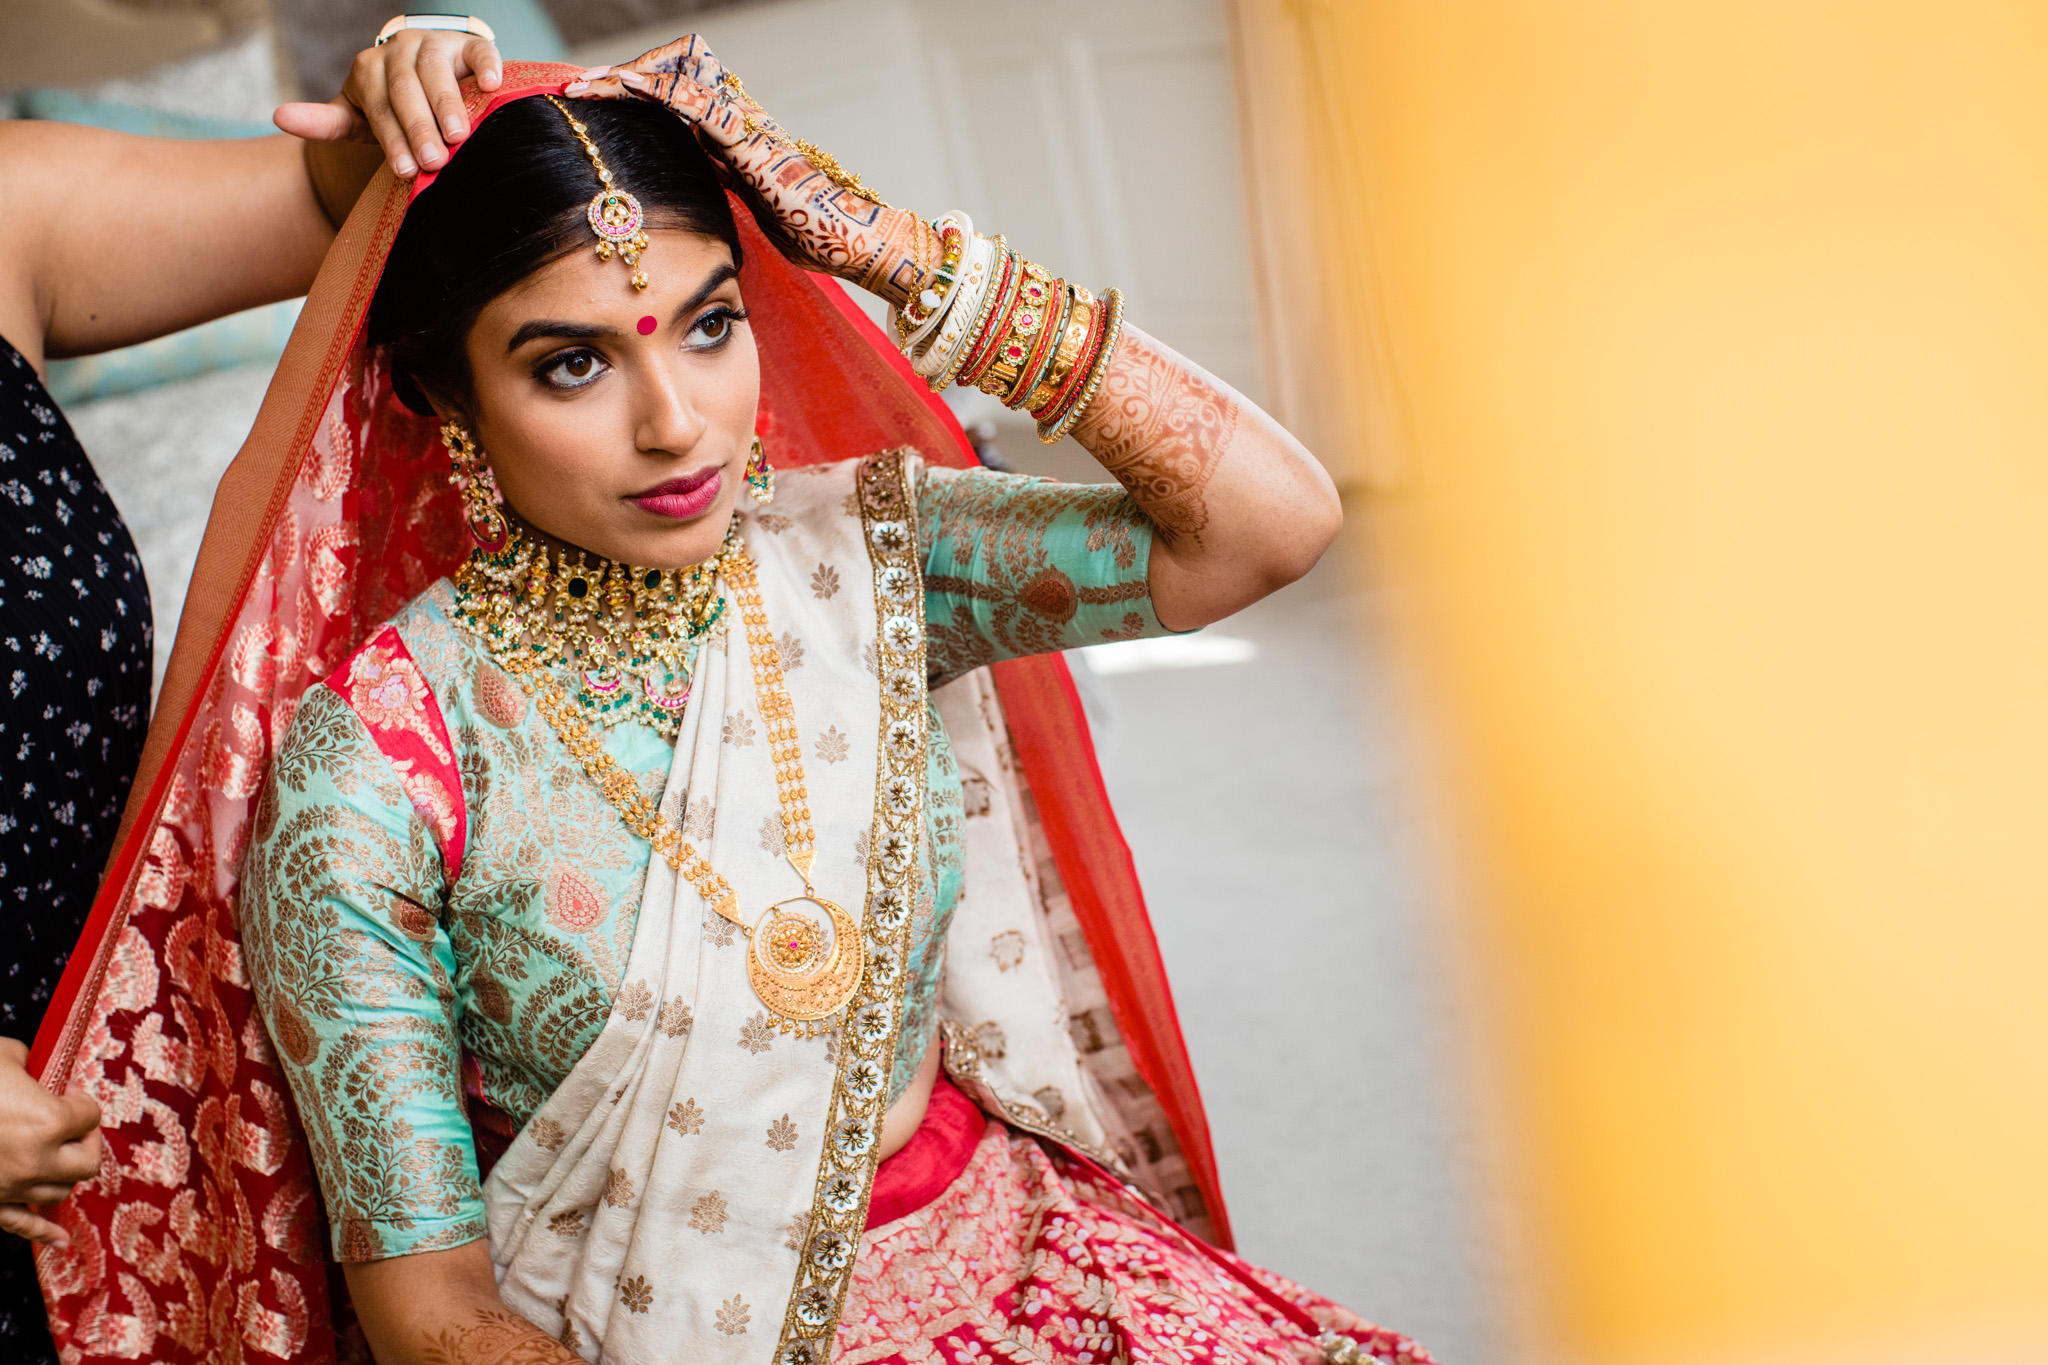 Sikh bride during getting ready in bridal suite looking into the mirror